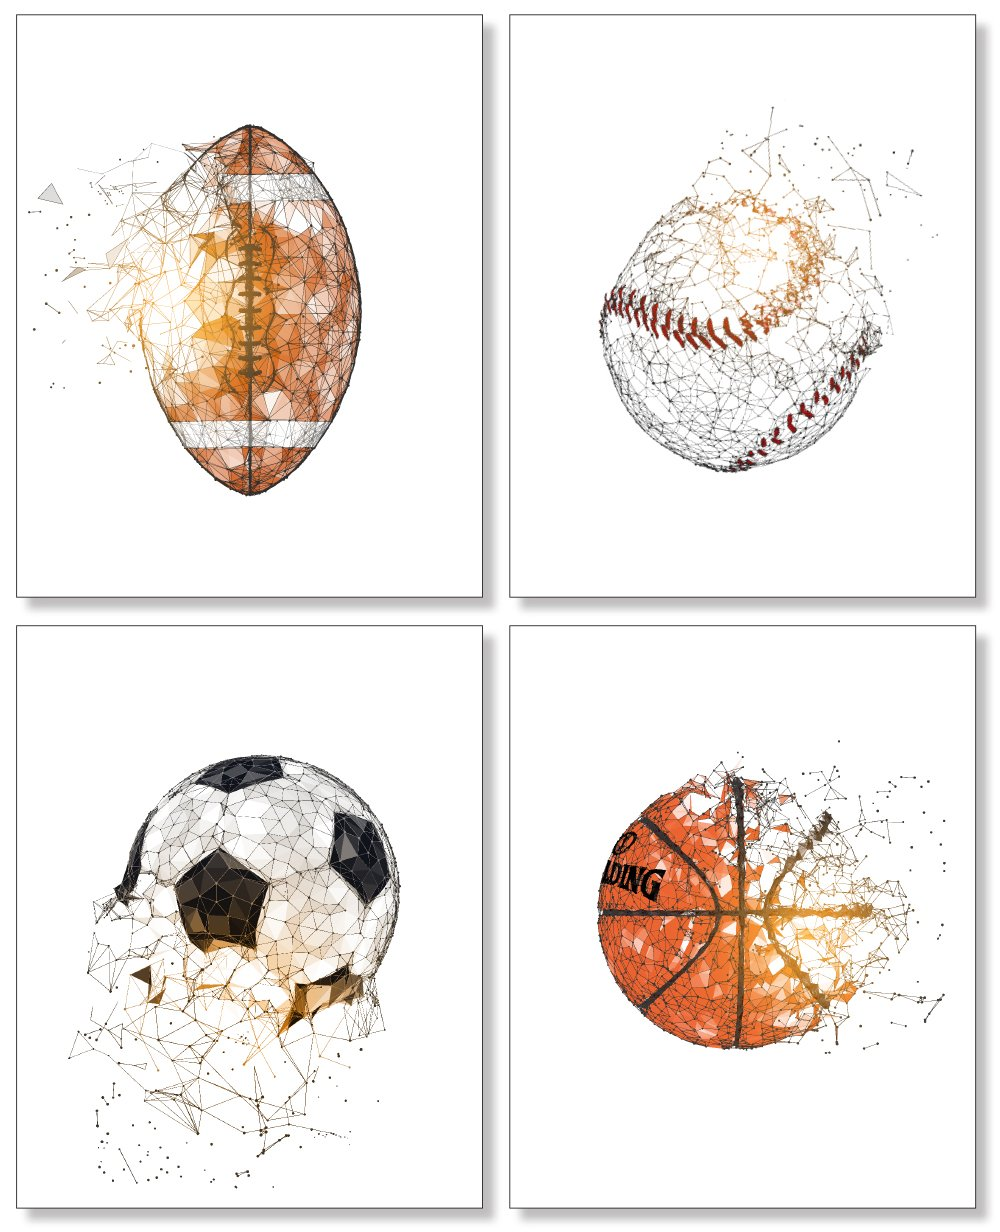 Kids Room Sports Posters - Football Baseball Soccer Basketball Wall Decor - 8x10 Unframed Set of 4 Art Prints